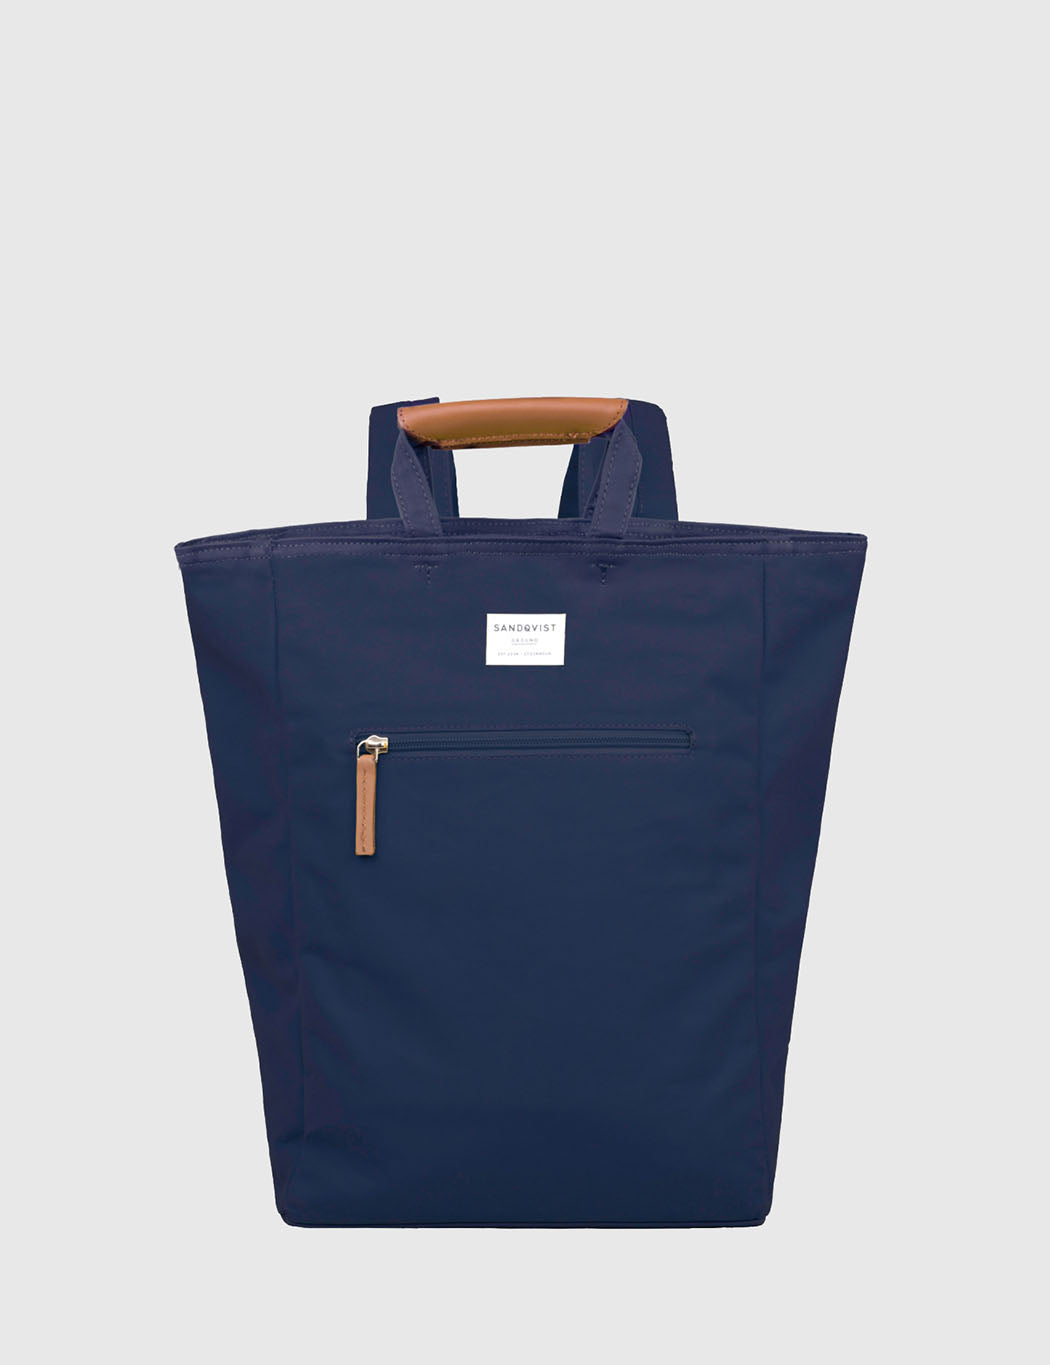 Sandqvist Tony Tote Bag (Canvas) - Blue | URBAN EXCESS.